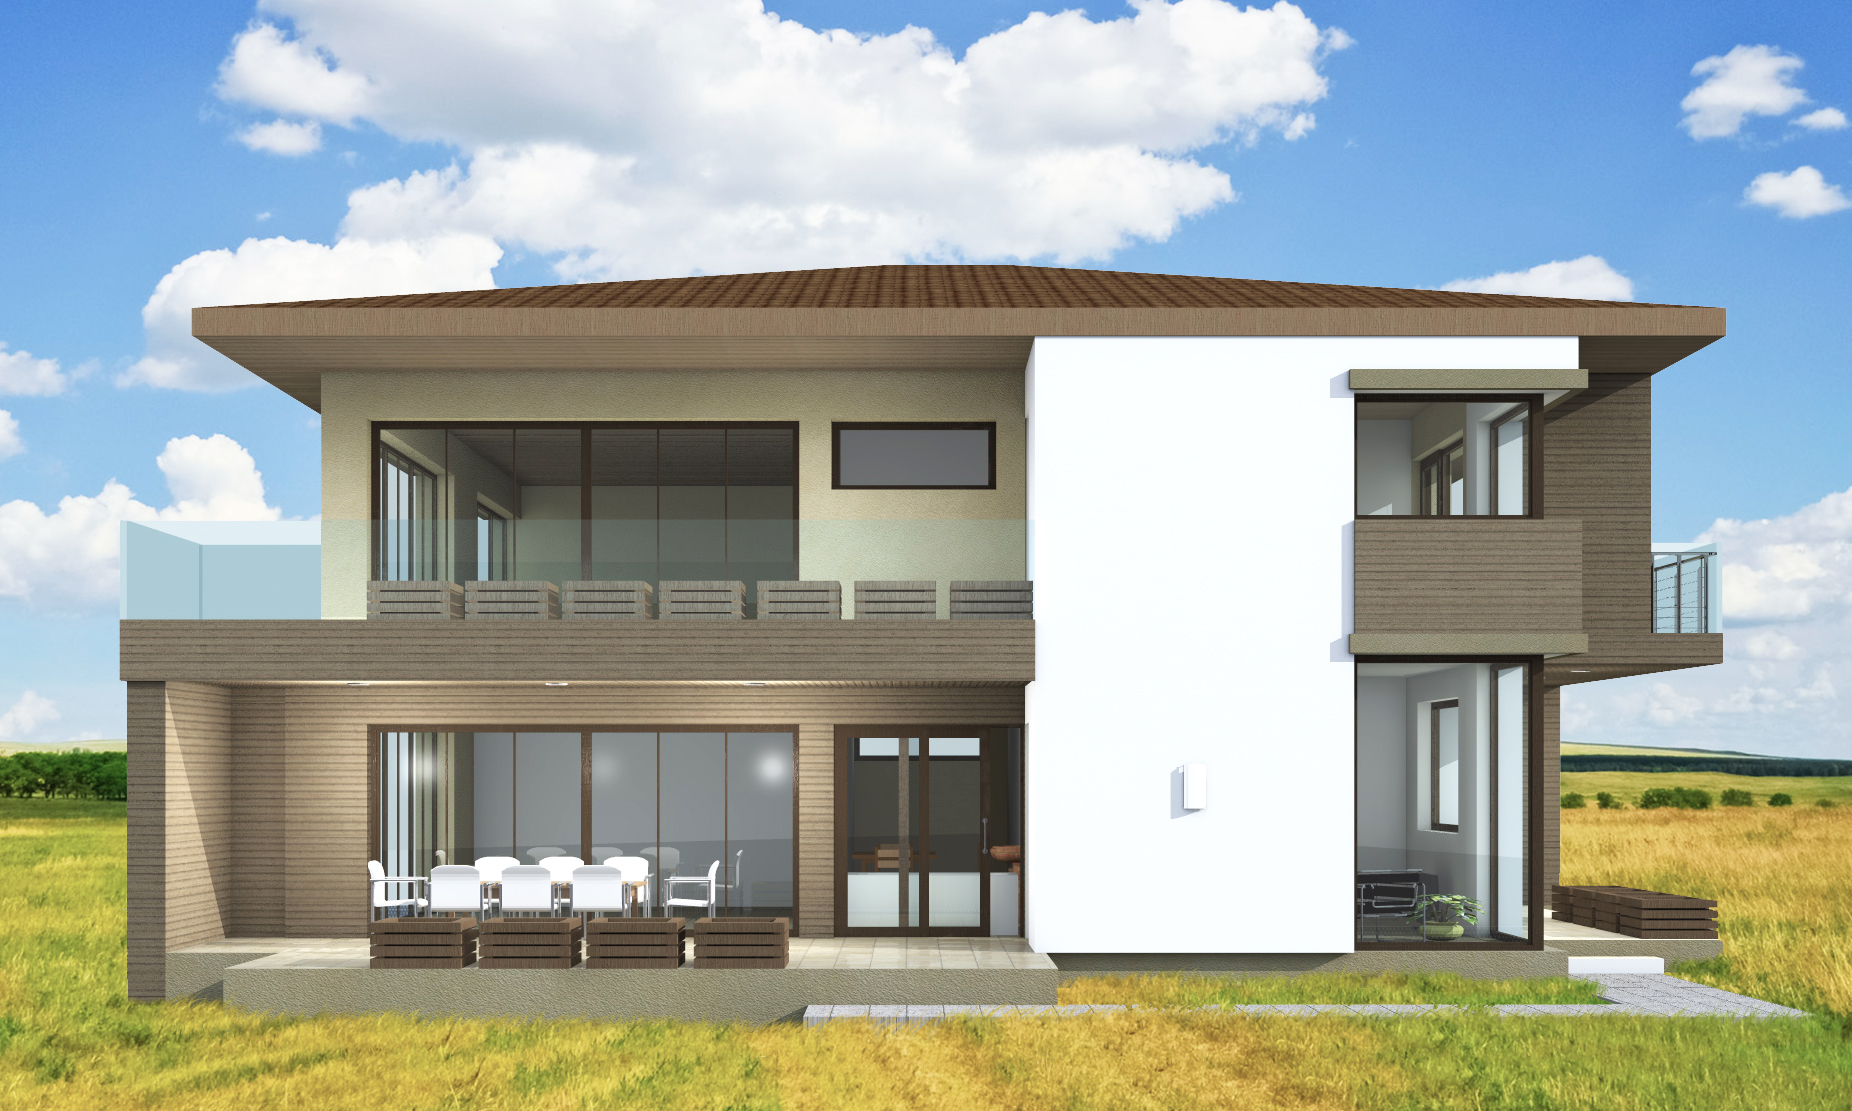 Plan maison contemporaine CJ5190m2